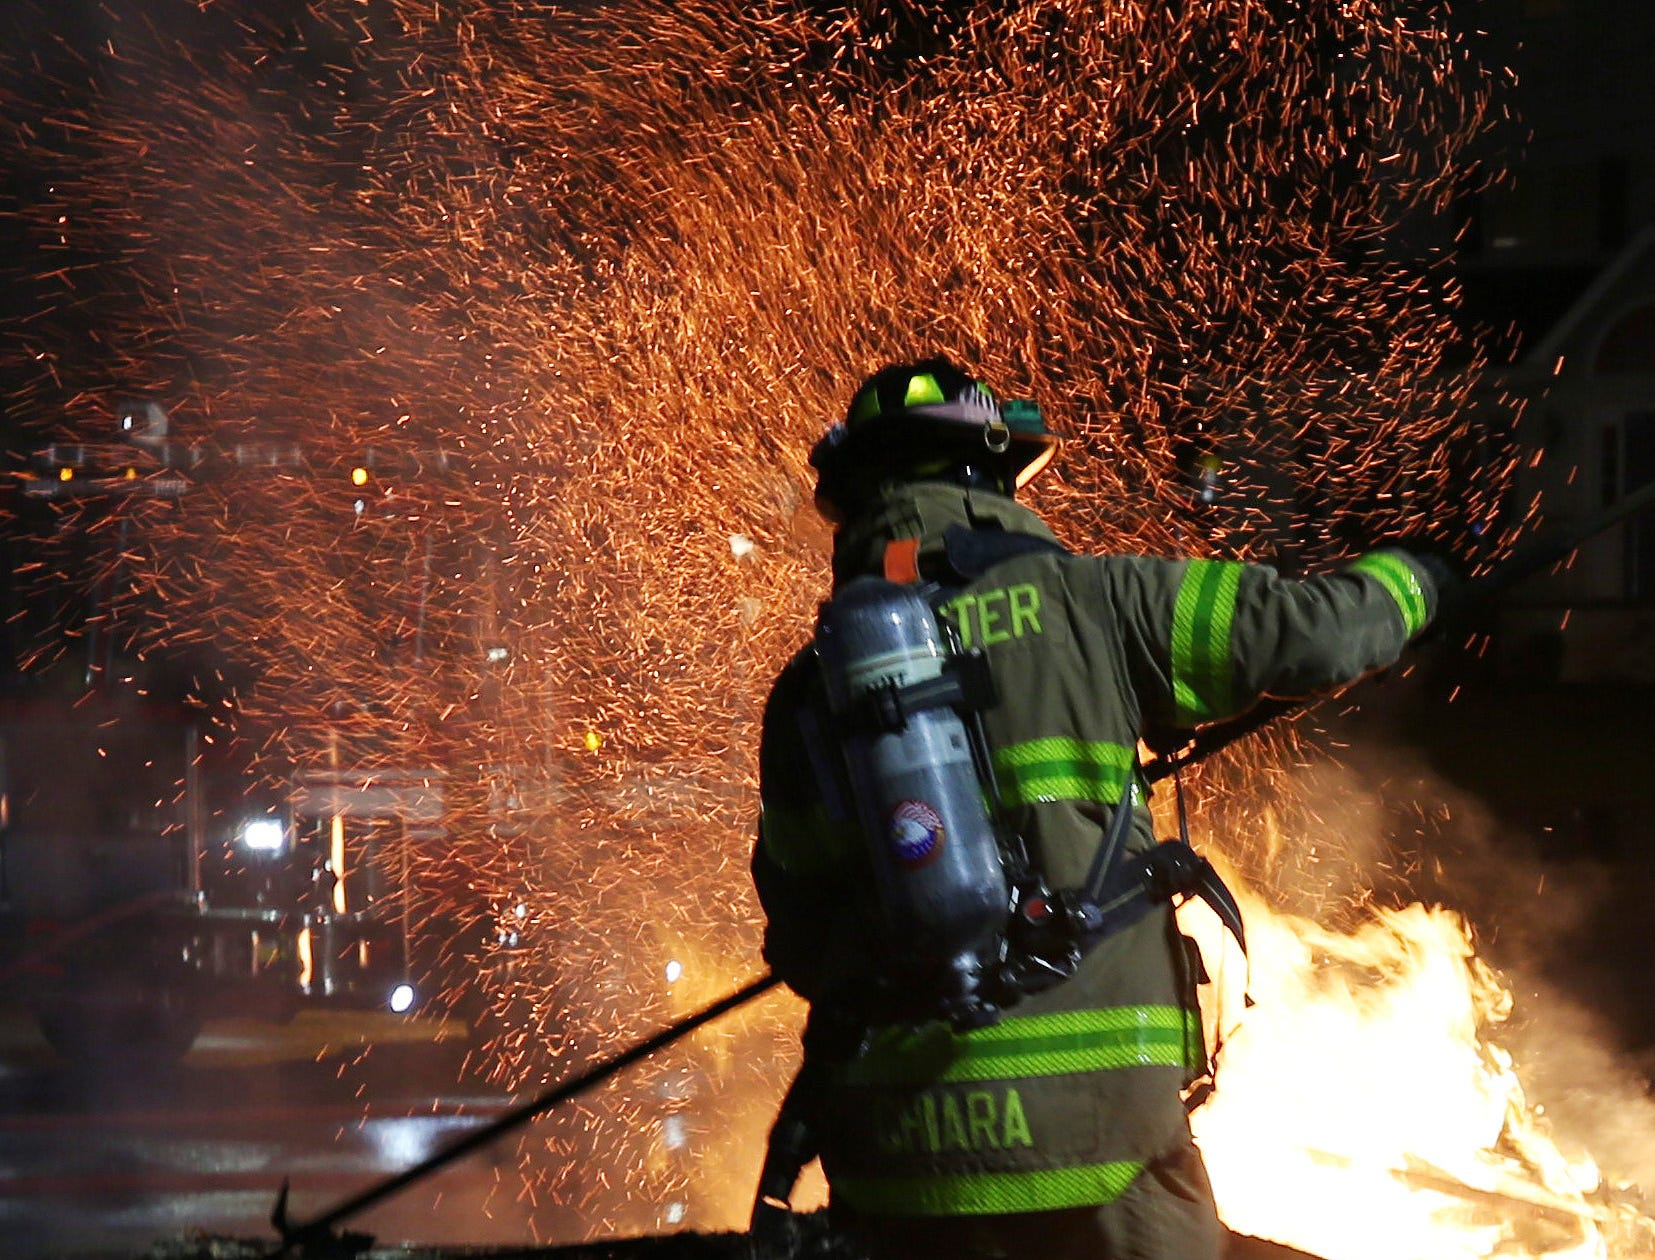 Brewster firefighter Matt Chiara pulls apart a burning structure that was used as a demonstration, as Brewster firefighters showed the public their skills during fire prevention week at Brewster fire headquarters Oct. 14, 2018.